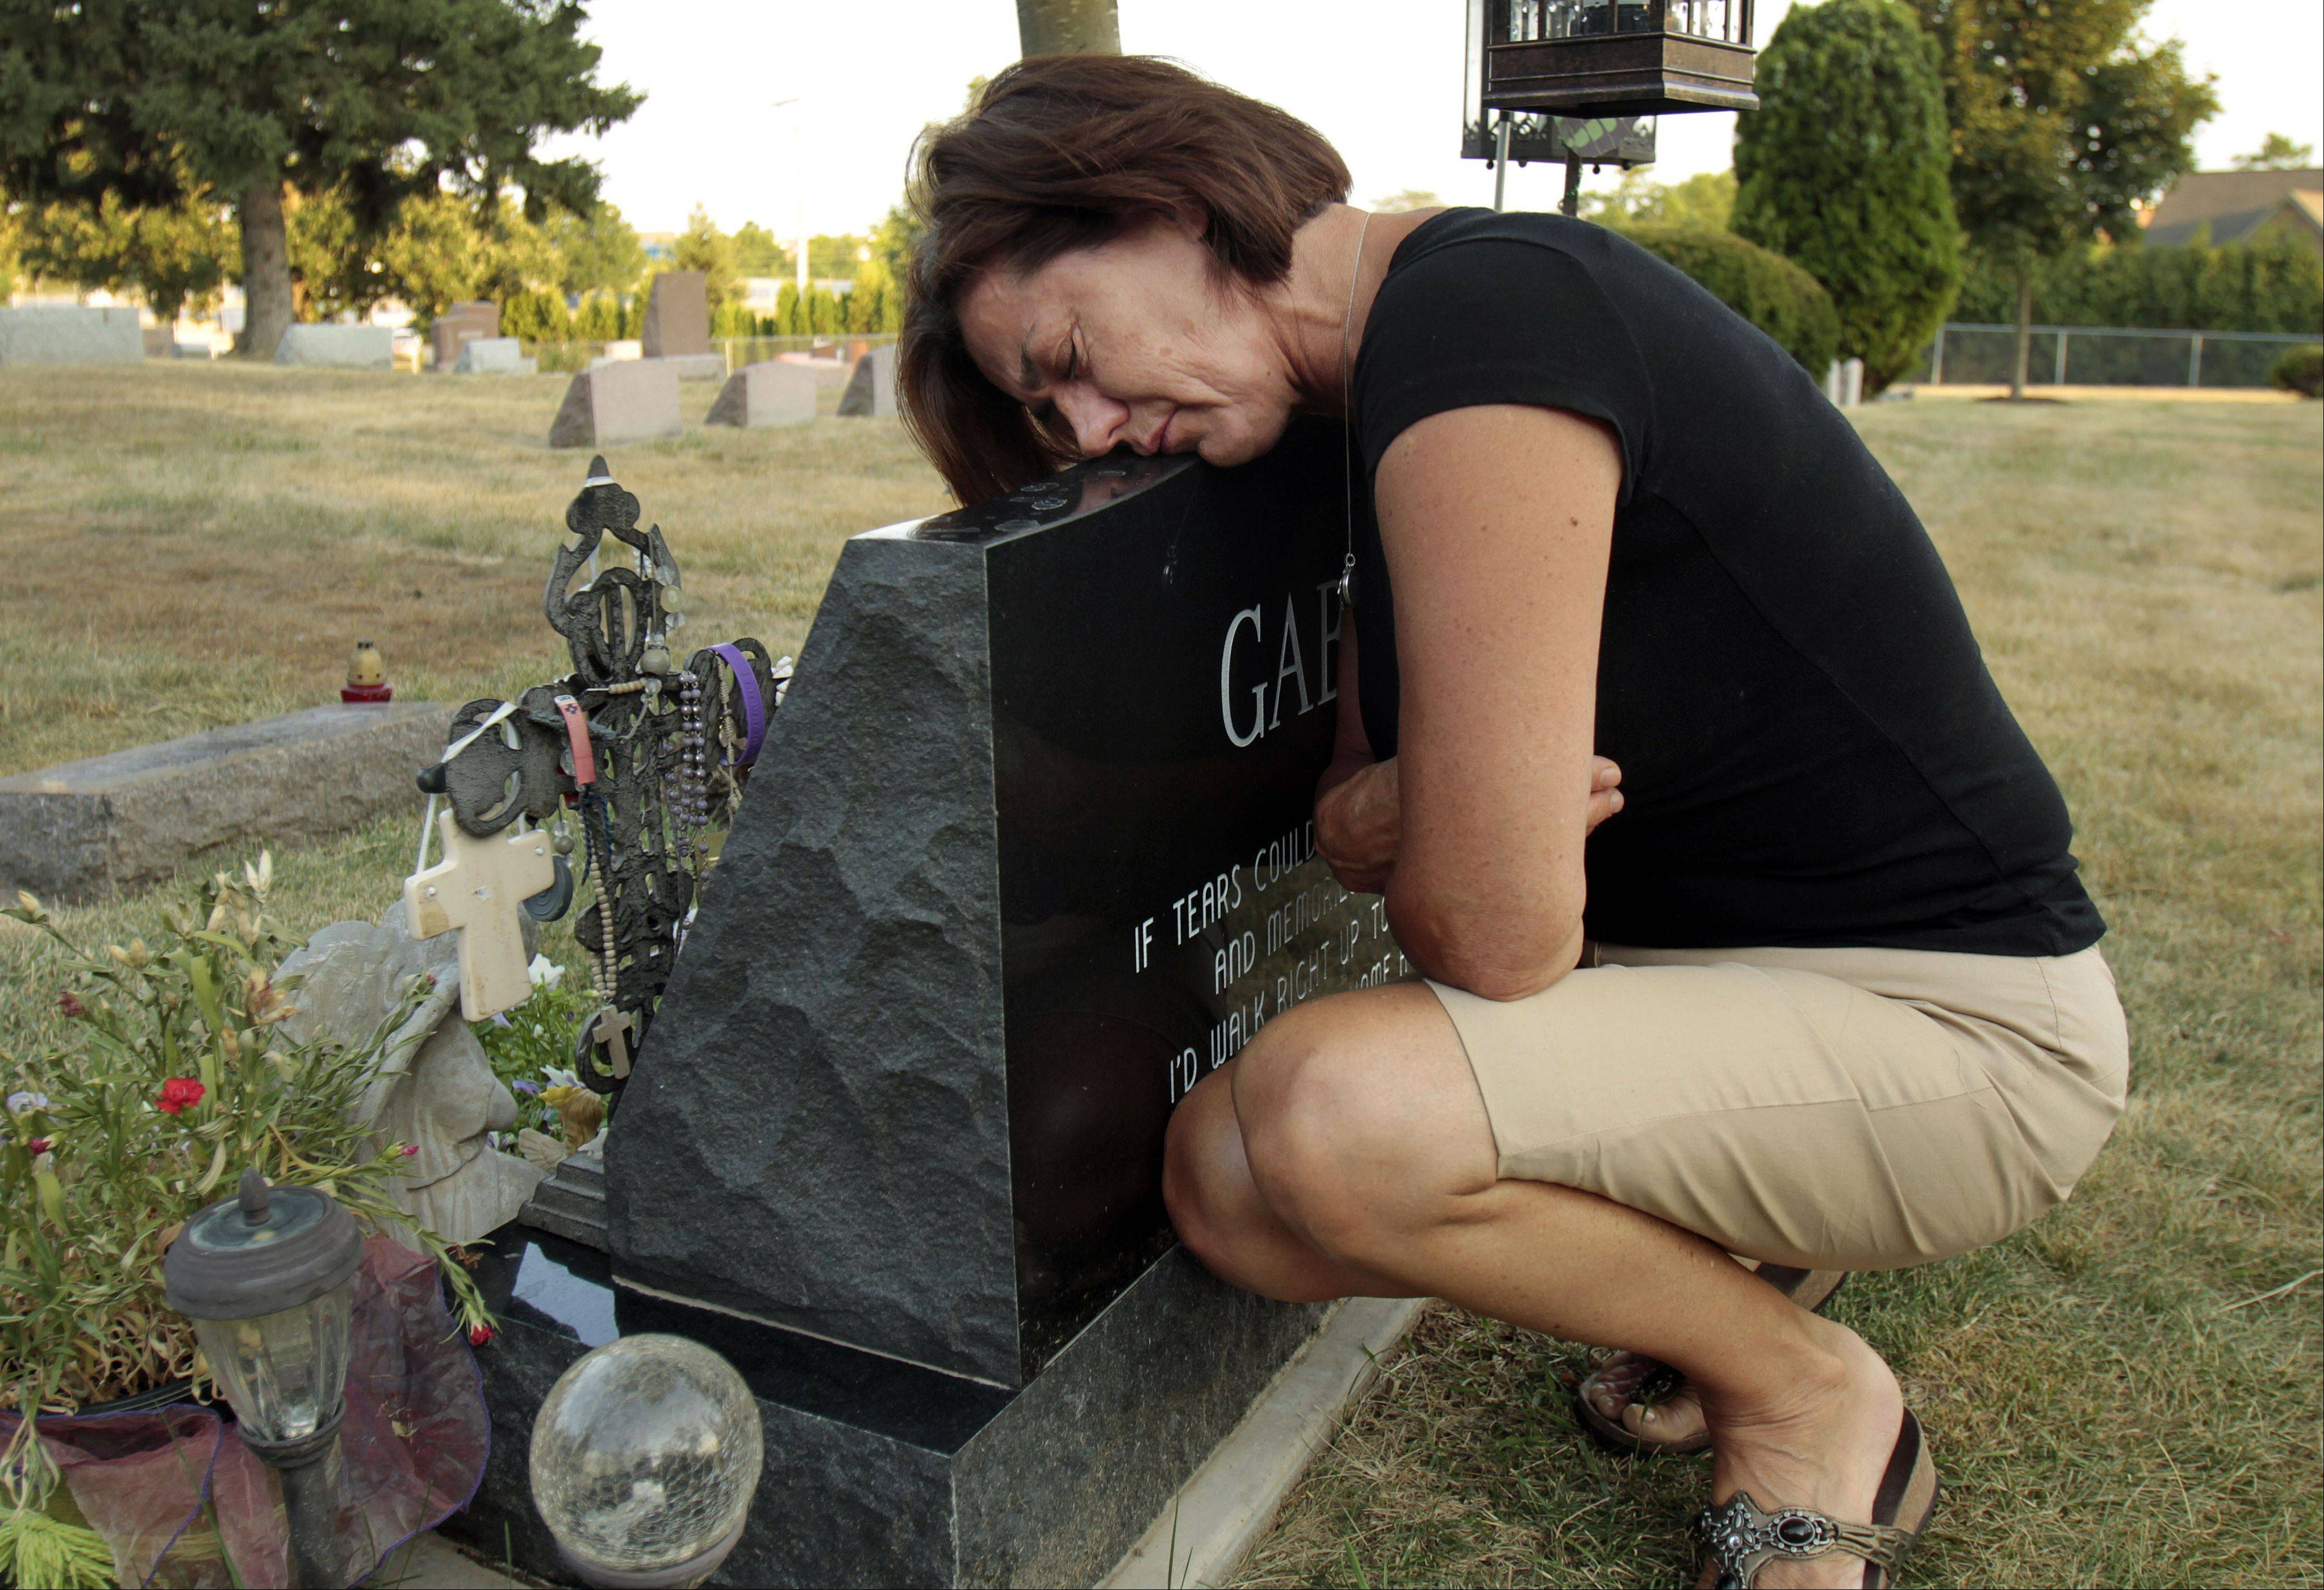 Teresa Drozdz of Lake Zurich rests her head on the headstone of her daughter, Gabriella Drozdz. Gabriella died a year ago when she was struck by a hit-and-run driver while walking along Church Street in Lake Zurich.